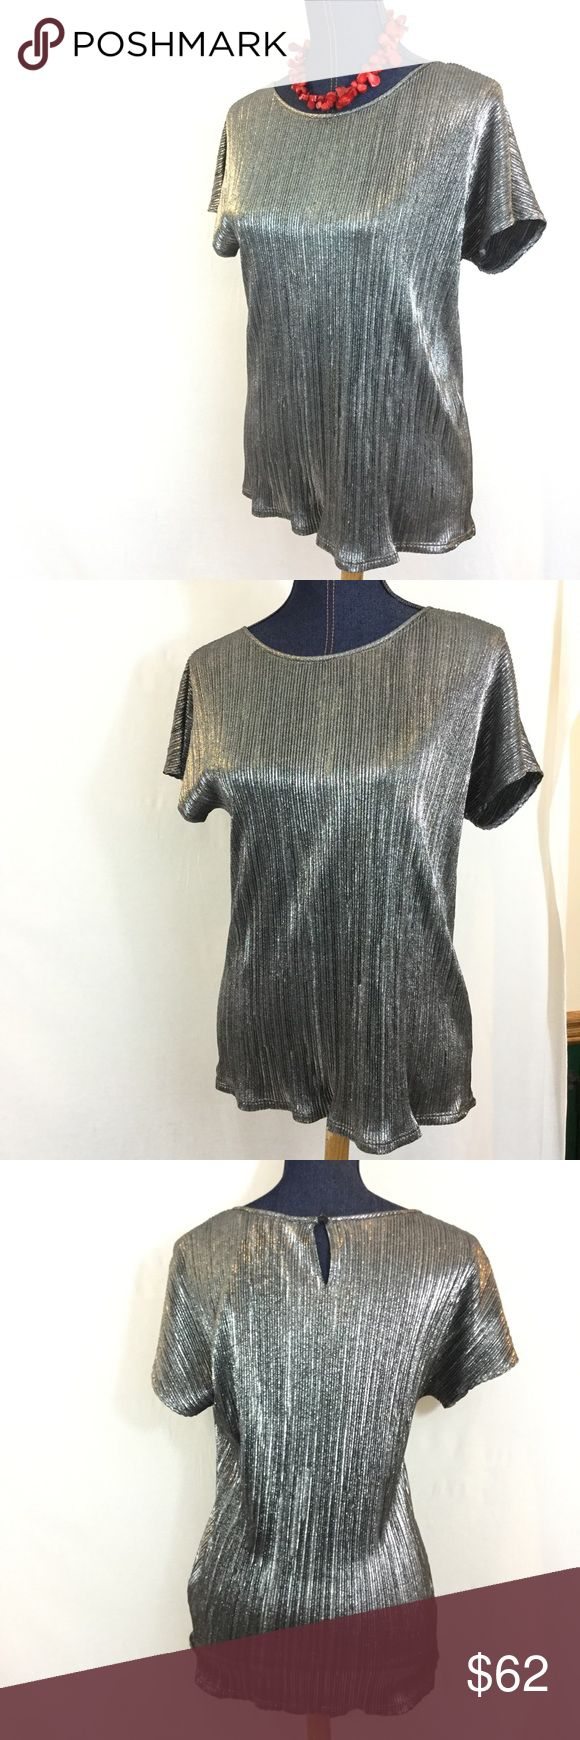 New NY COLLECTION Silver Medium Short Sleeve Top Gorgeous NY Collection from Macy's spring long-sleeved top.  Subtle vertical lines produces a slimming effect!  Measurements and fabric content in pics.  Washed but never worn. Love this top! NY Collection Tops Blouses